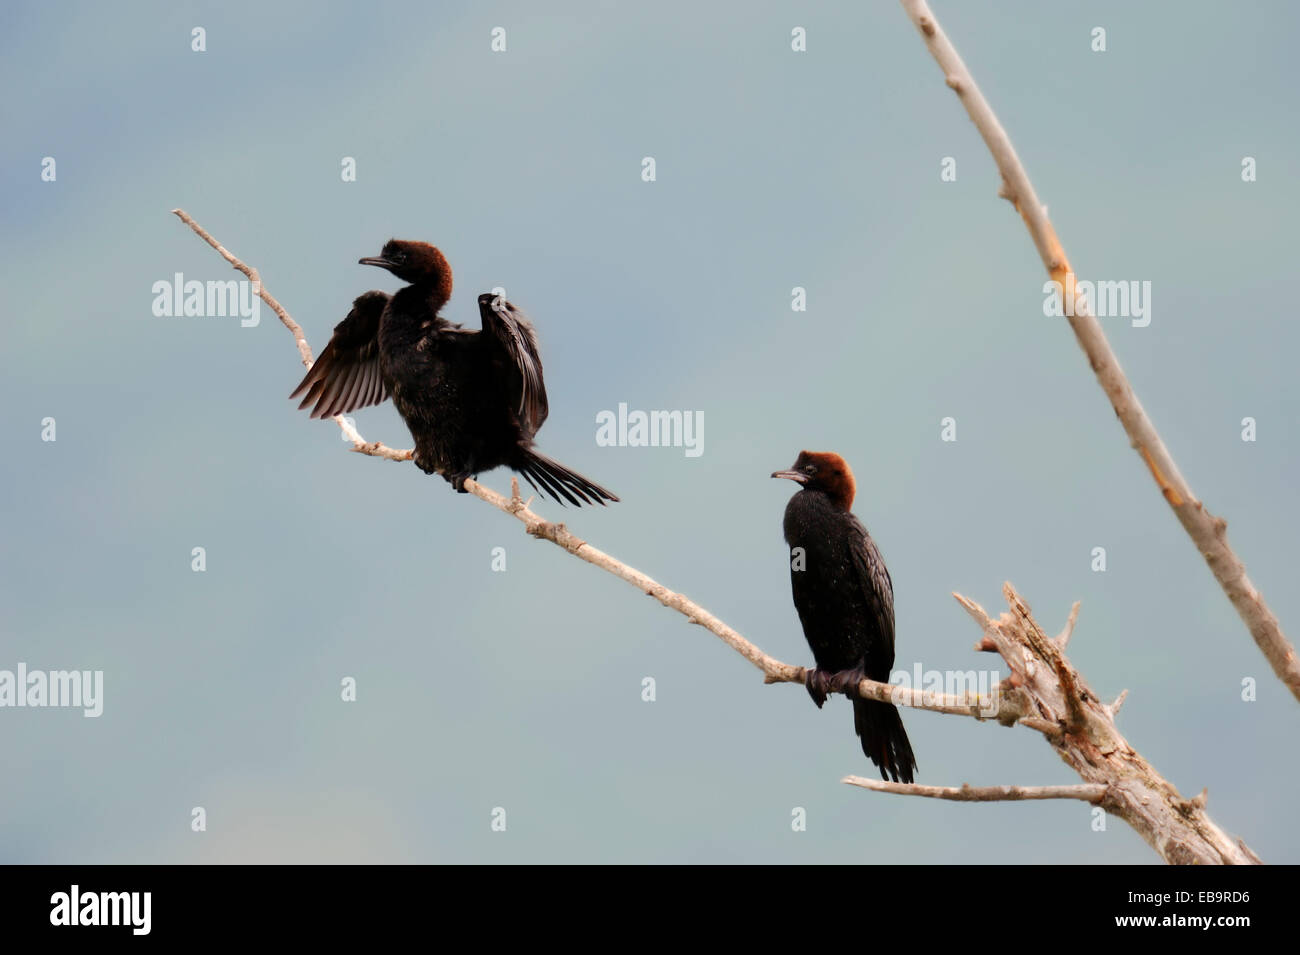 Pygmy Cormorants (Phalacrocorax pygmaeus) perched on branch, Central Macedonia, Greece - Stock Image